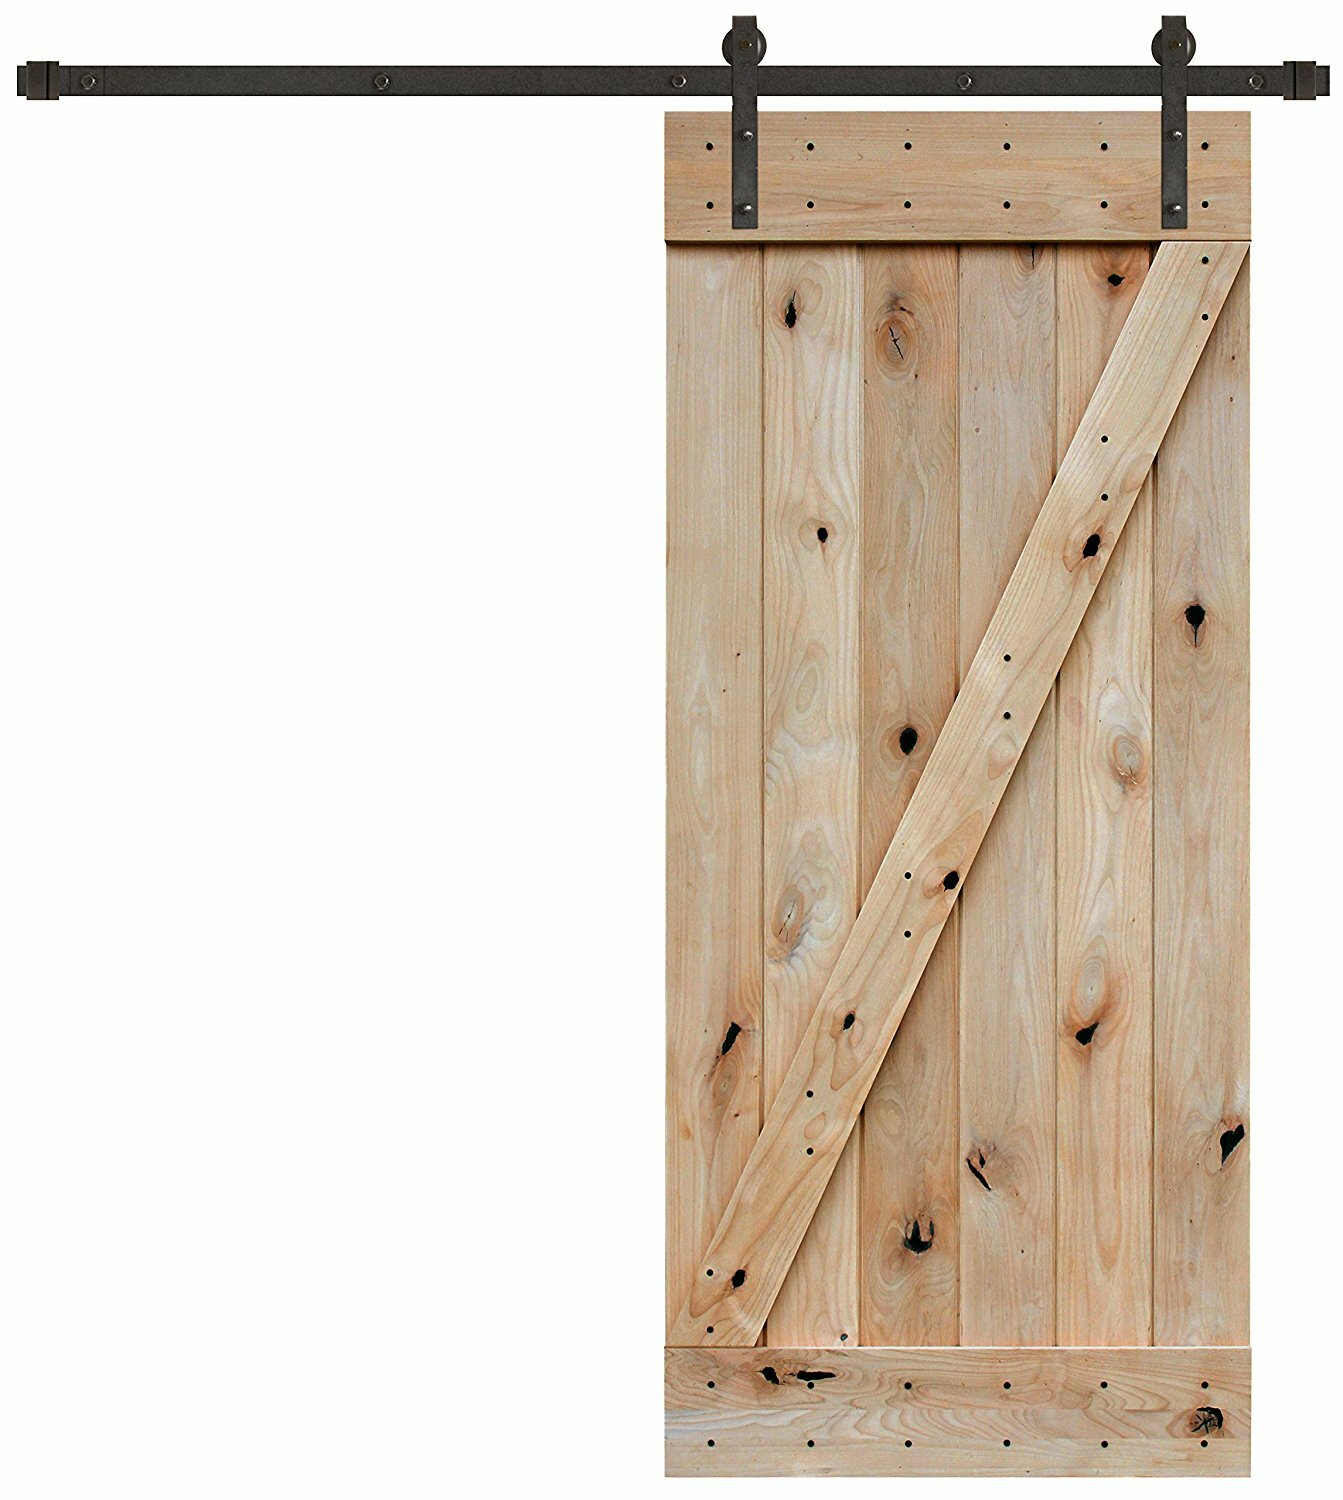 Bon LegendsInternationalLLC Z Bar Knotty Alder Wood 1 Panel Interior Barn Door  | Wayfair